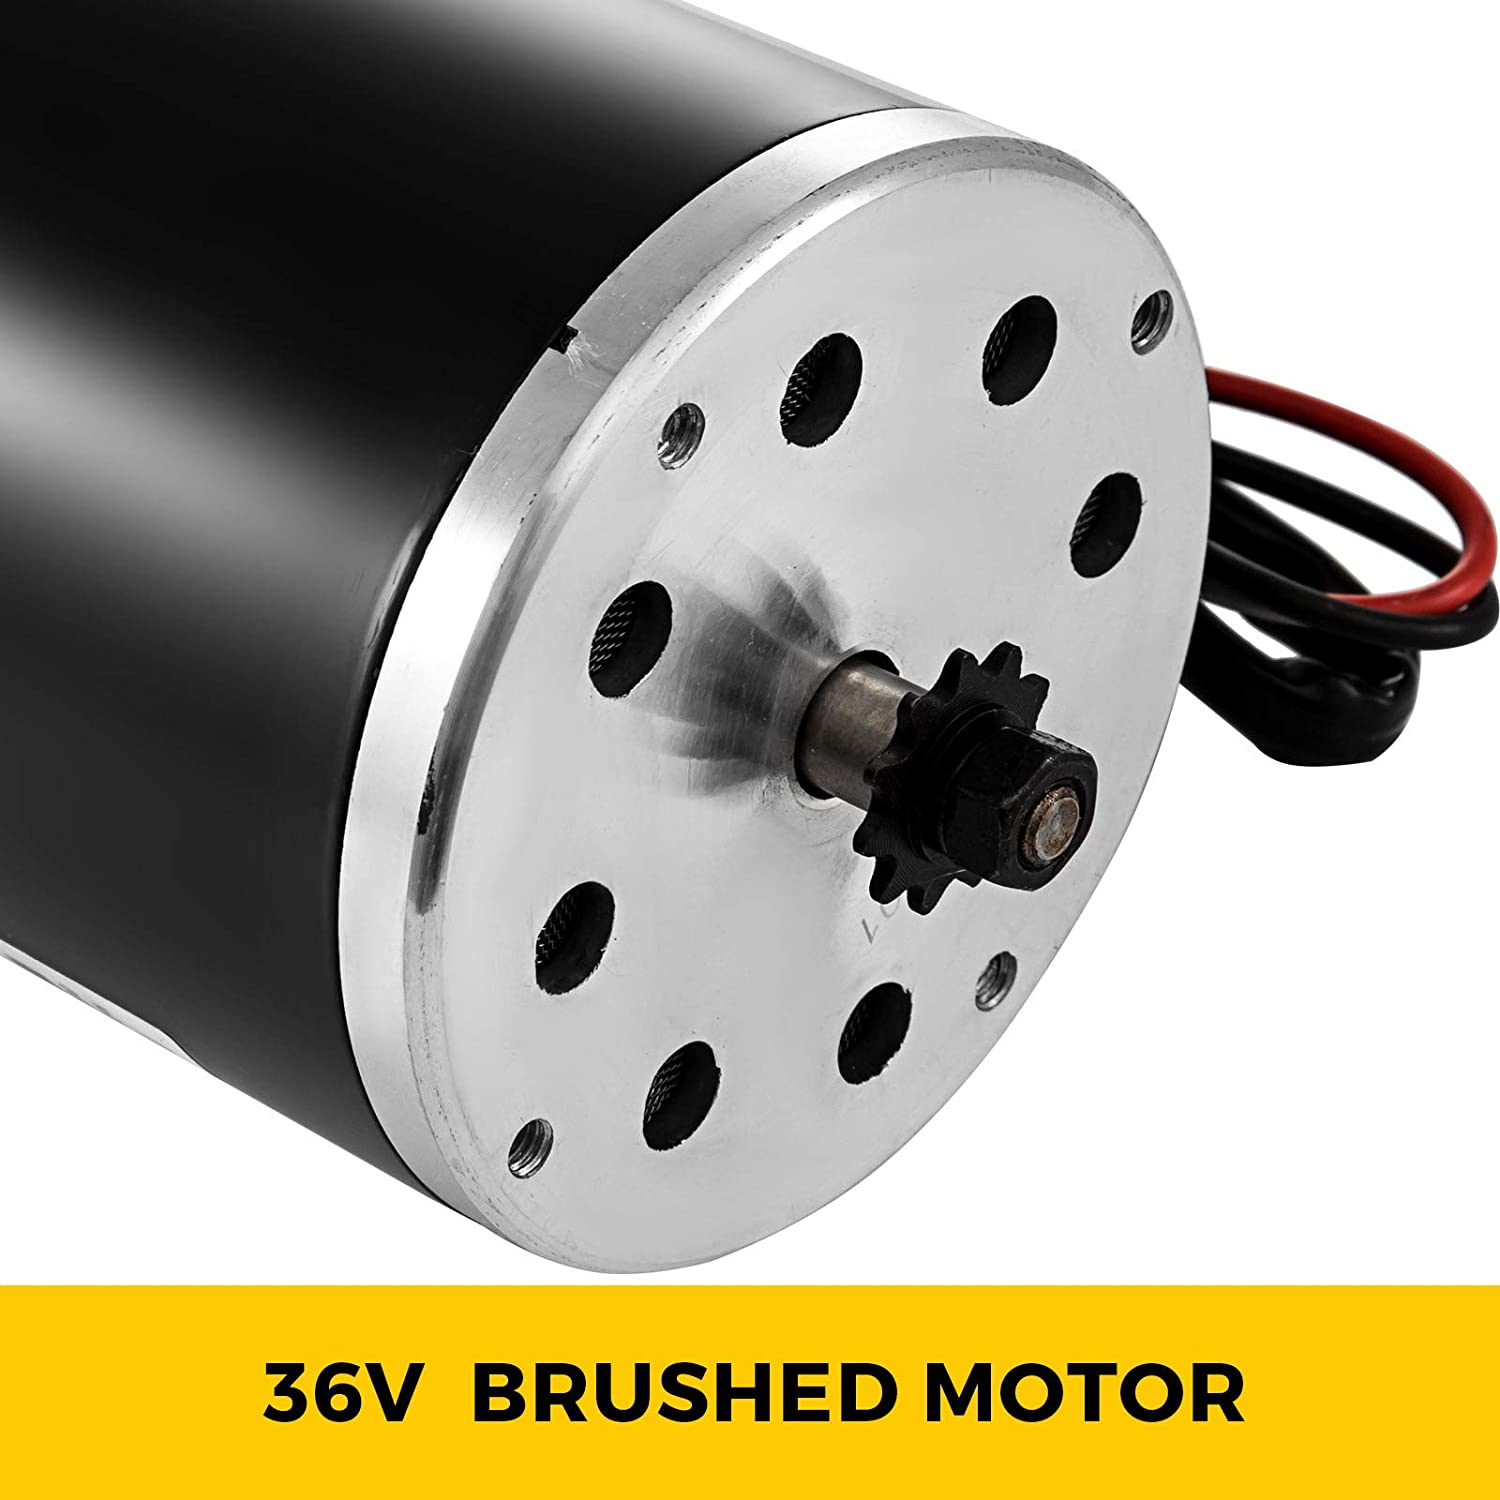 Amazon.com: Mophorn Electric Brushed Motor 36V DC 800 Watt ...